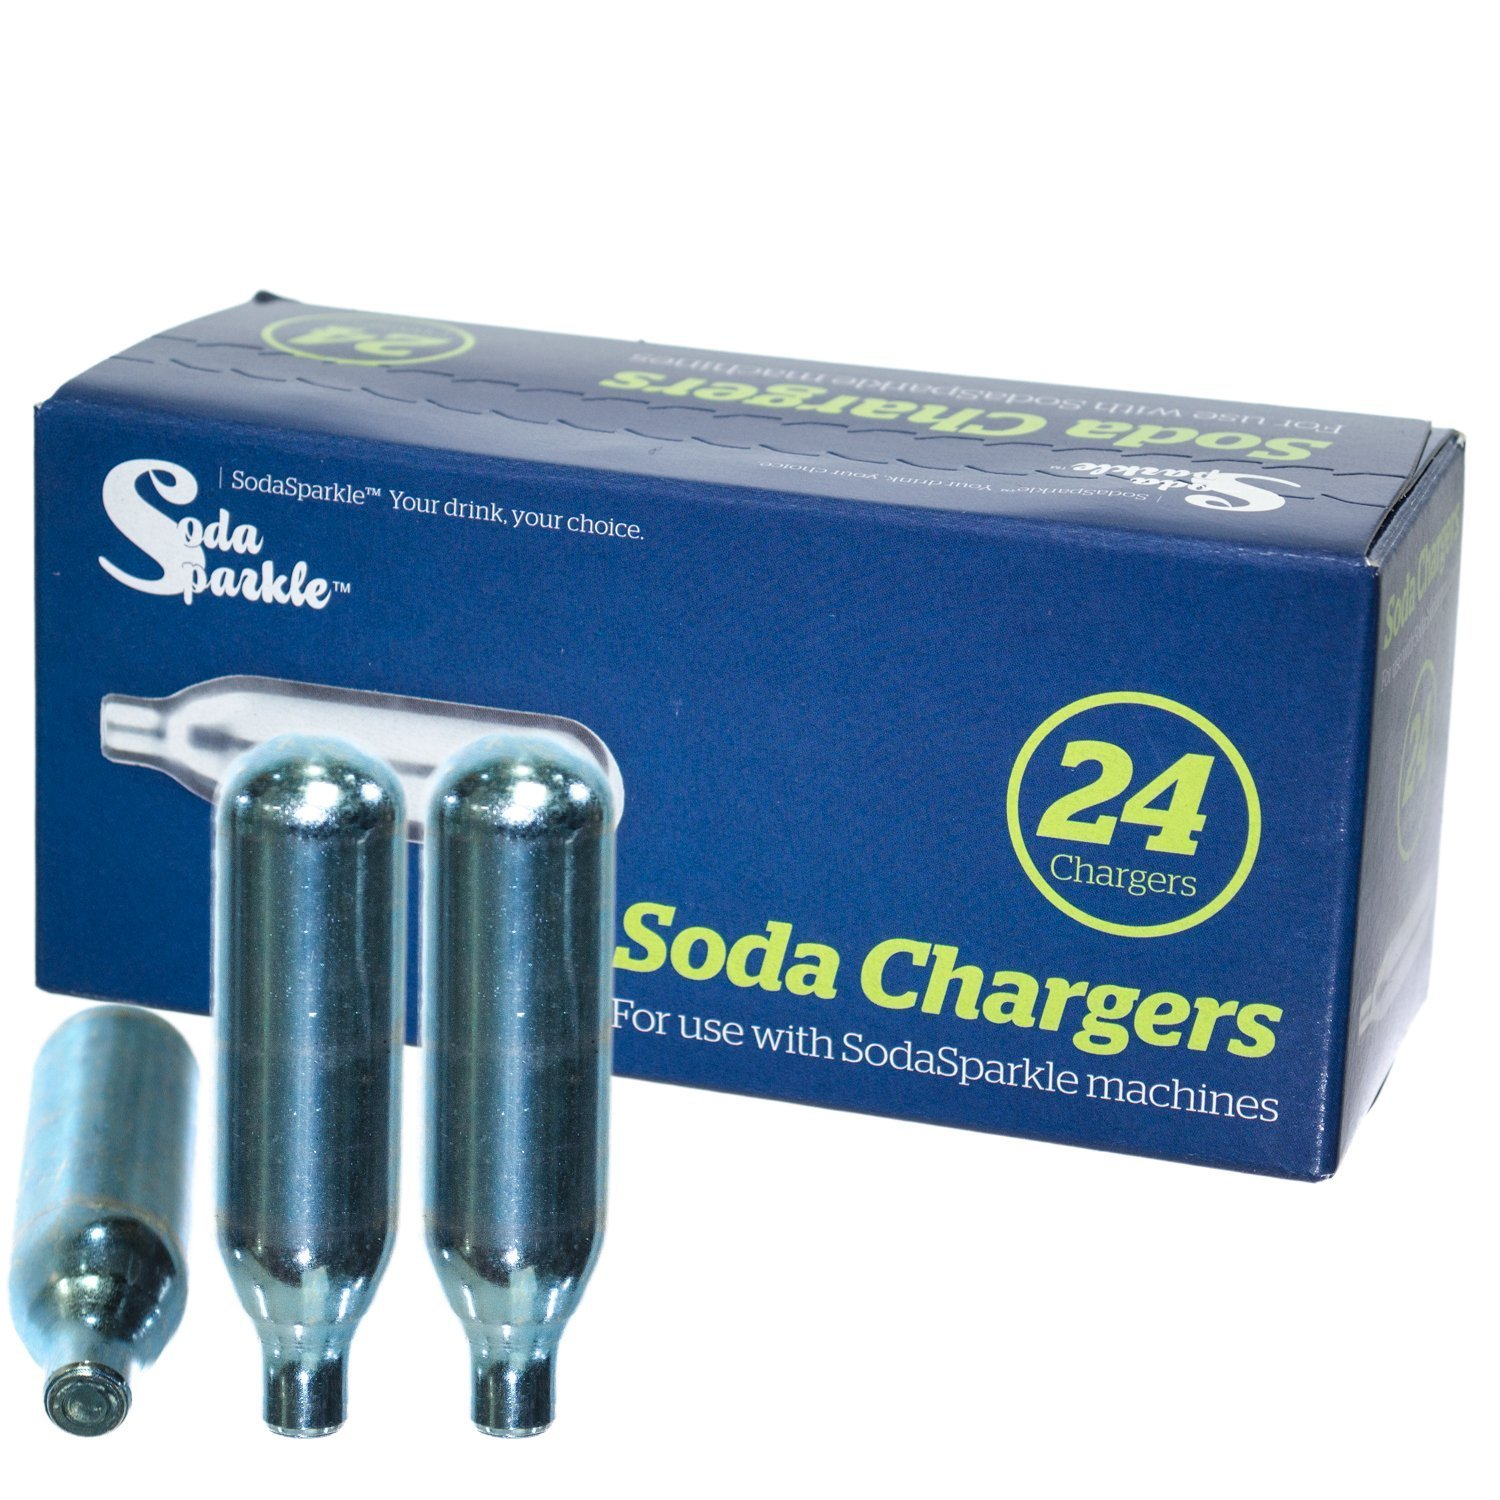 Soda Sparkle CO2 Cartridges, Pack with 24 Soda Chargers